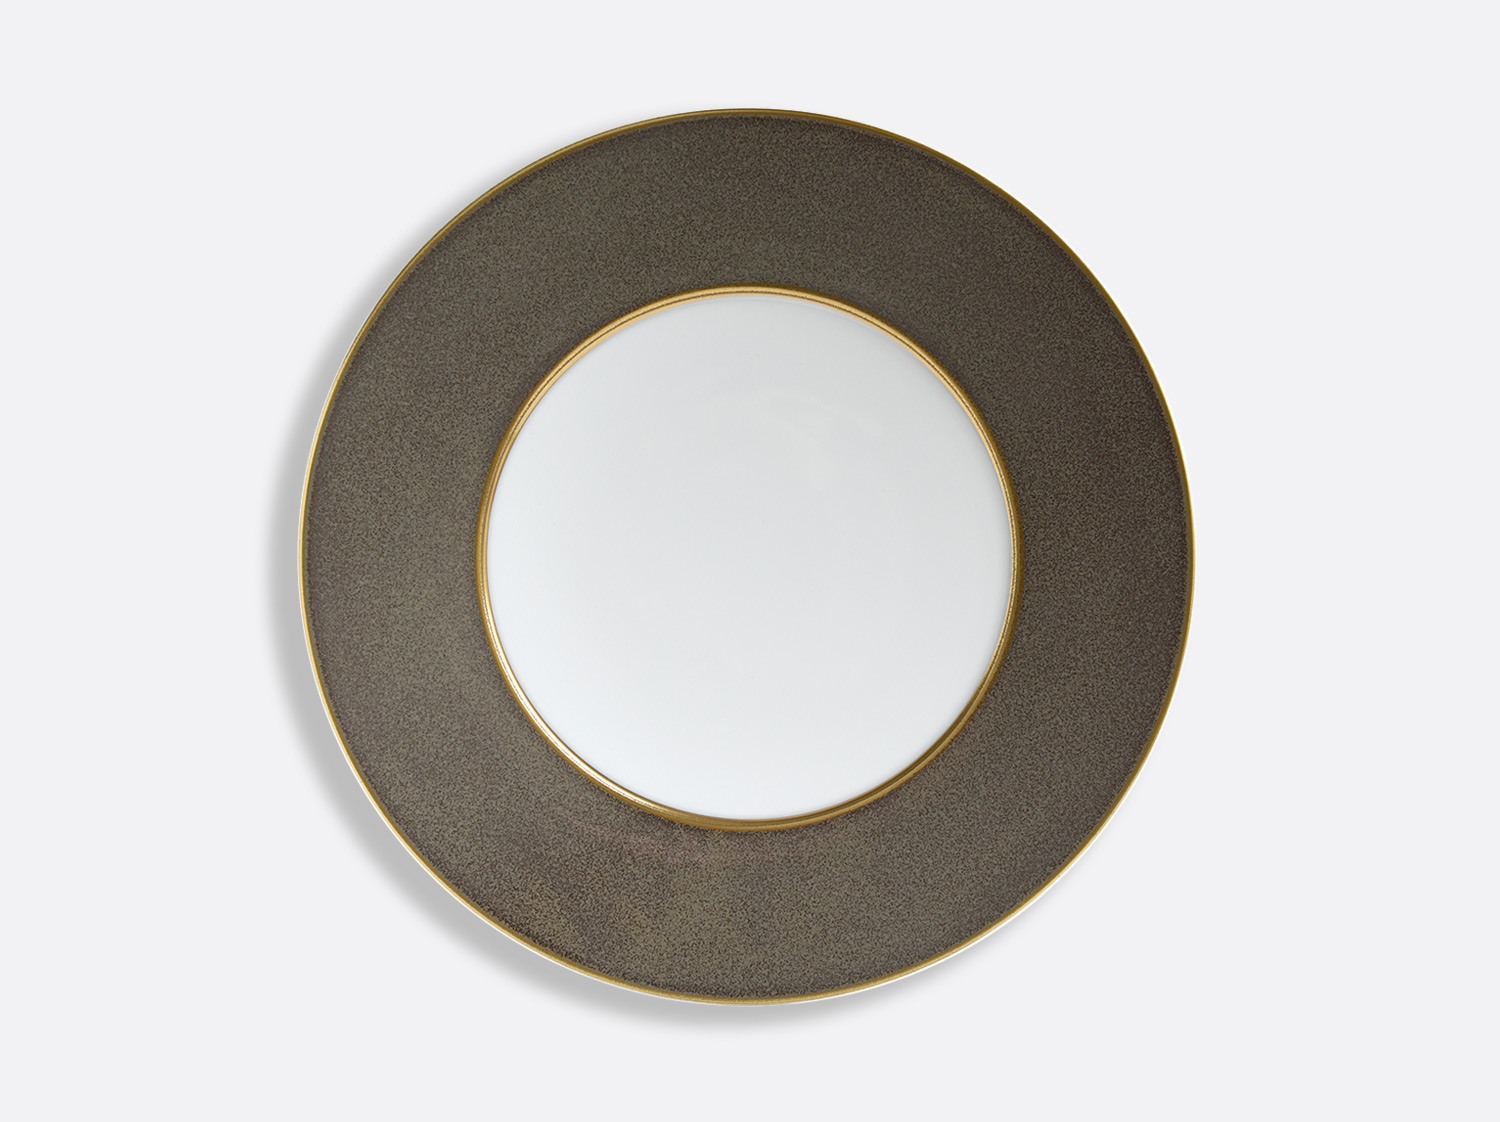 China Taupe/Or plate 29.5 cm of the collection ÉMAIL TAUPE - OR | Bernardaud